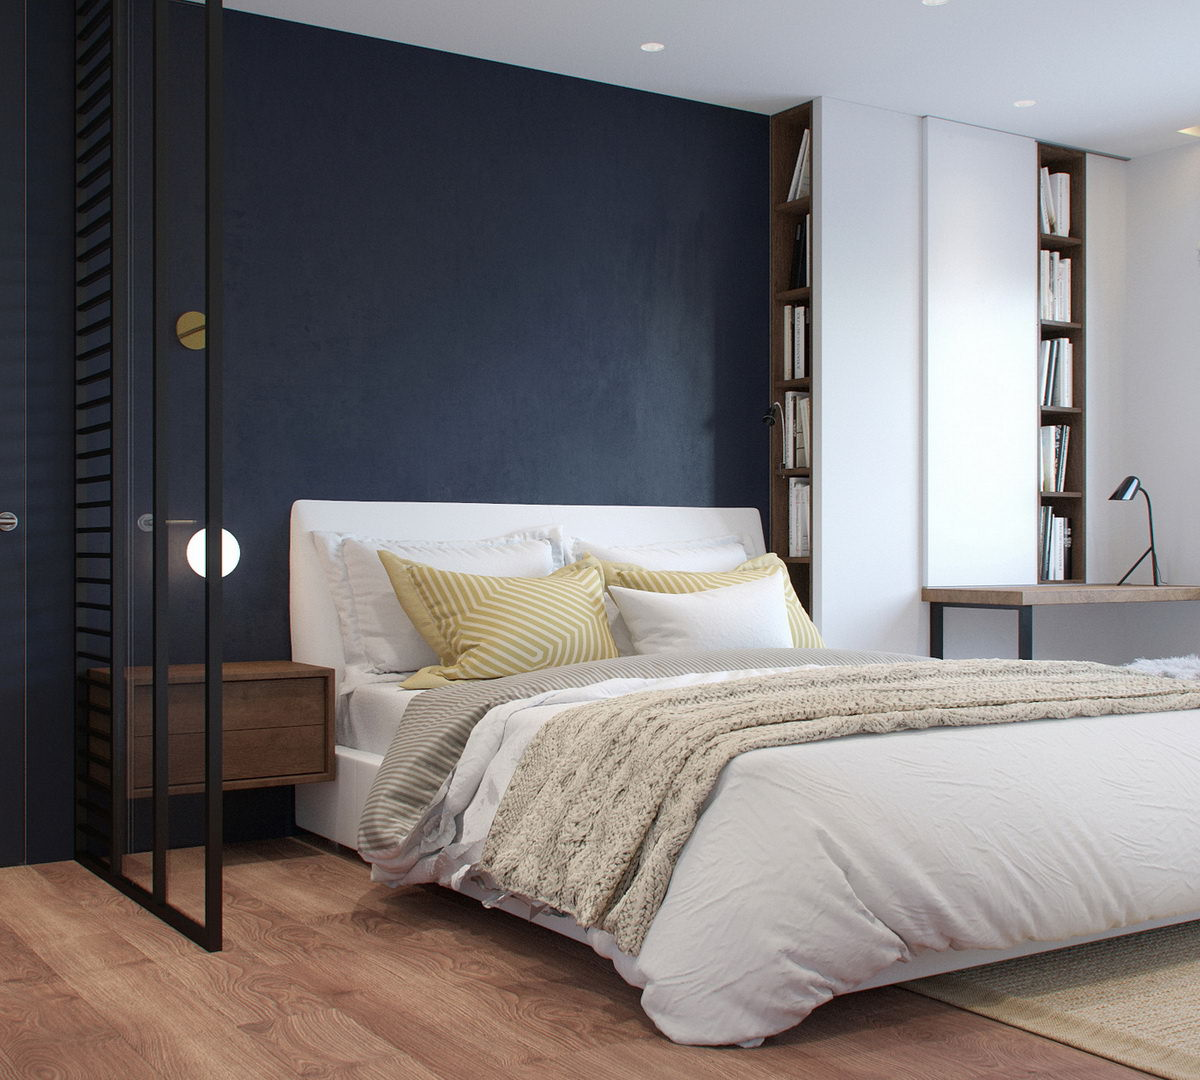 interior-3D-render-bedroom-depth-bed